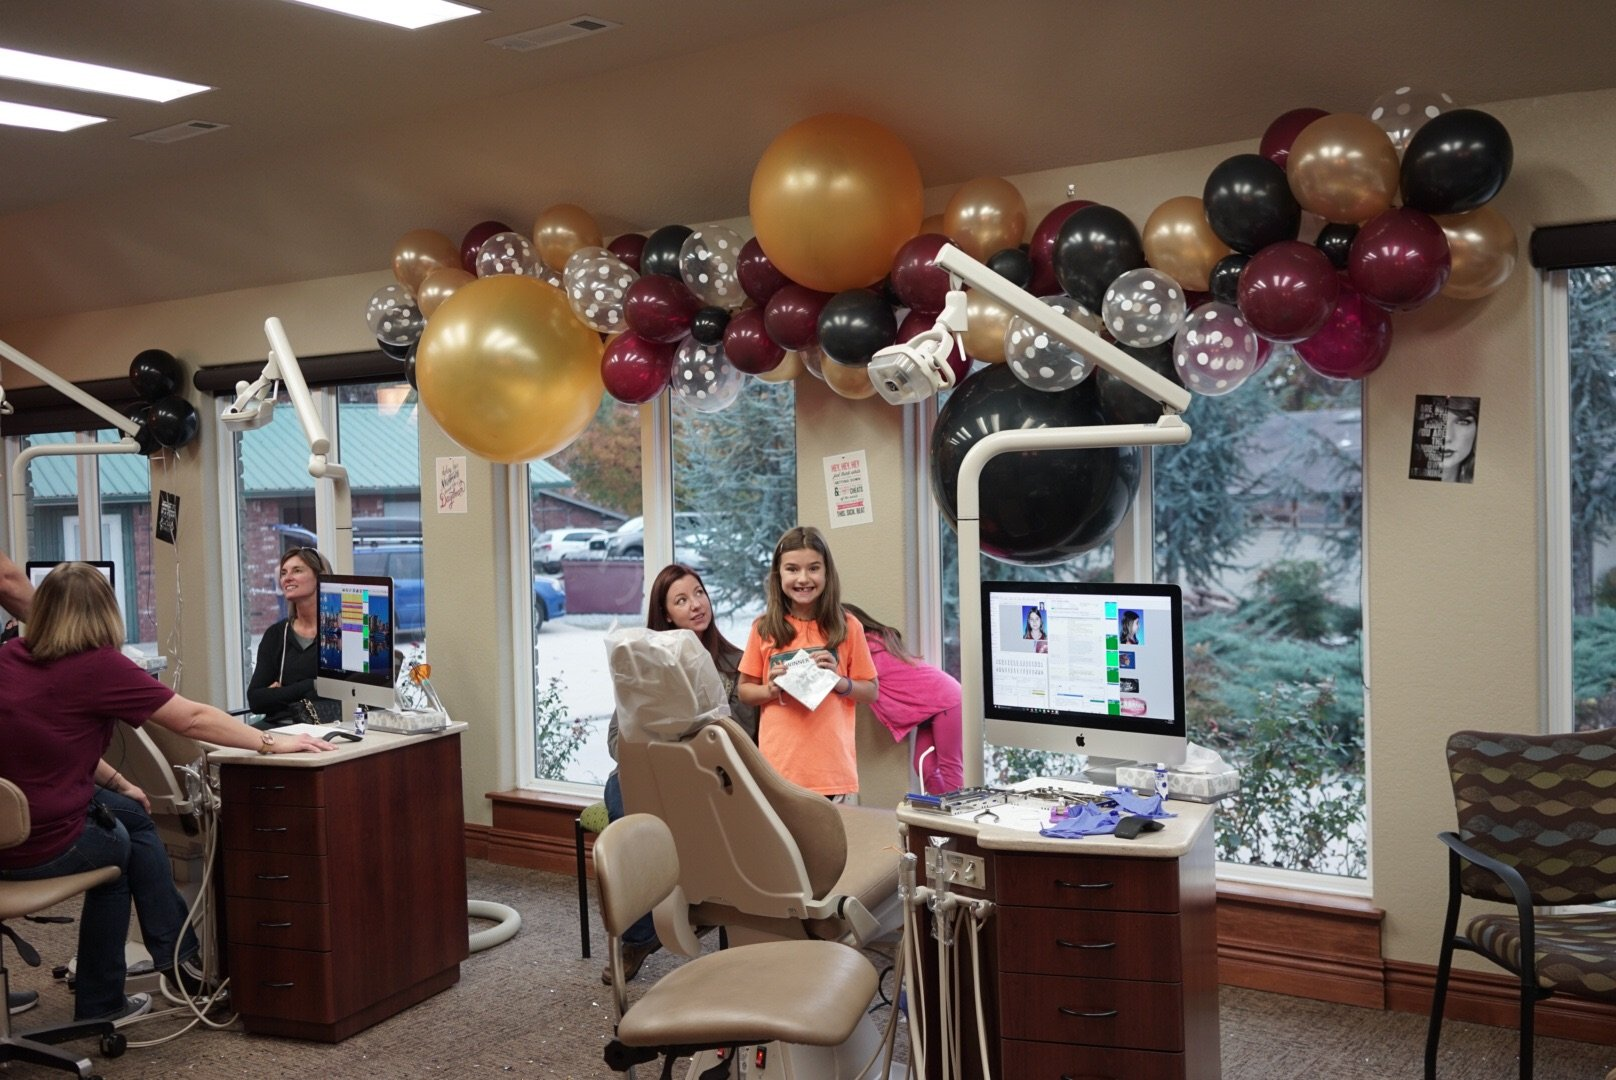 Northwest Orthodontics – Fayetteville AR Braces & Invisalign